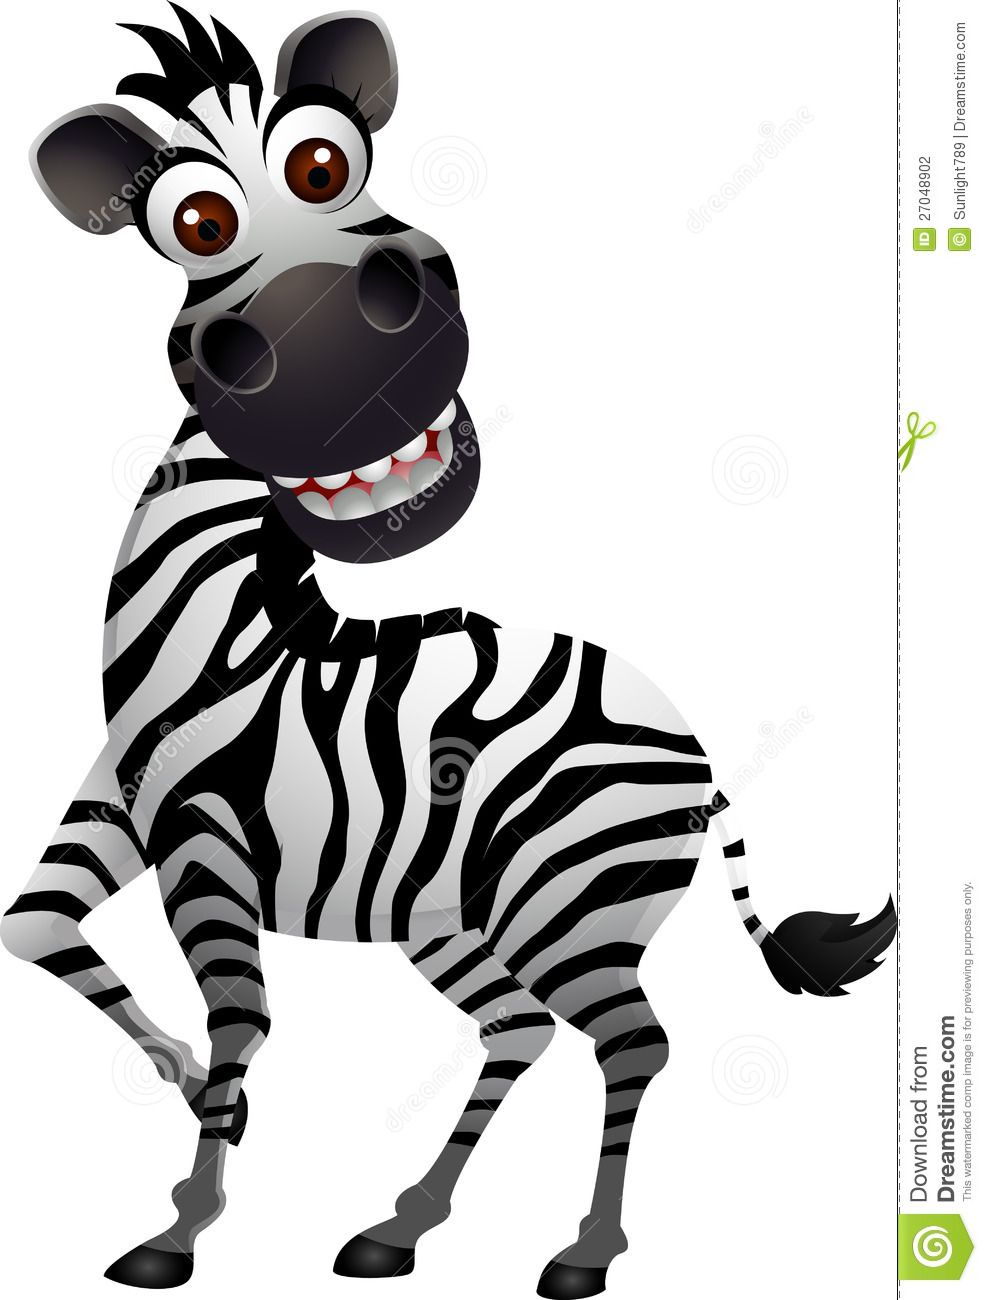 Funny and Cute Zebra | Funny zebra cartoon | Funny zebras ...